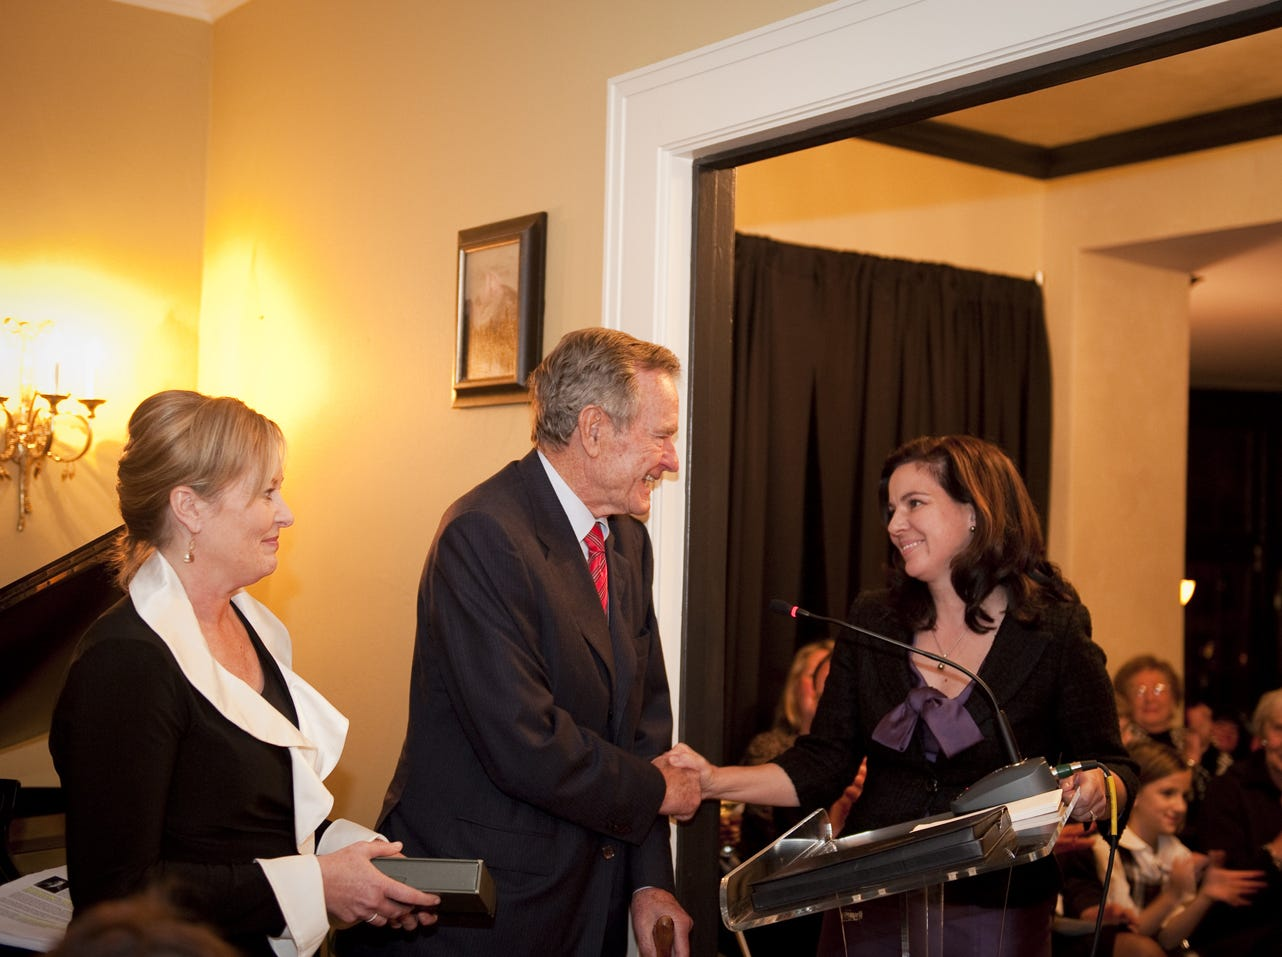 "A first edition of Booth Tarkington's first book titled ""The Gentleman from Indiana"" was presented to President Bush by Doris Anne Sadler and Becky Cook when he visited Sadler's Booth Tarkington mansion on Meridian Street on Nov. 26, 2009."